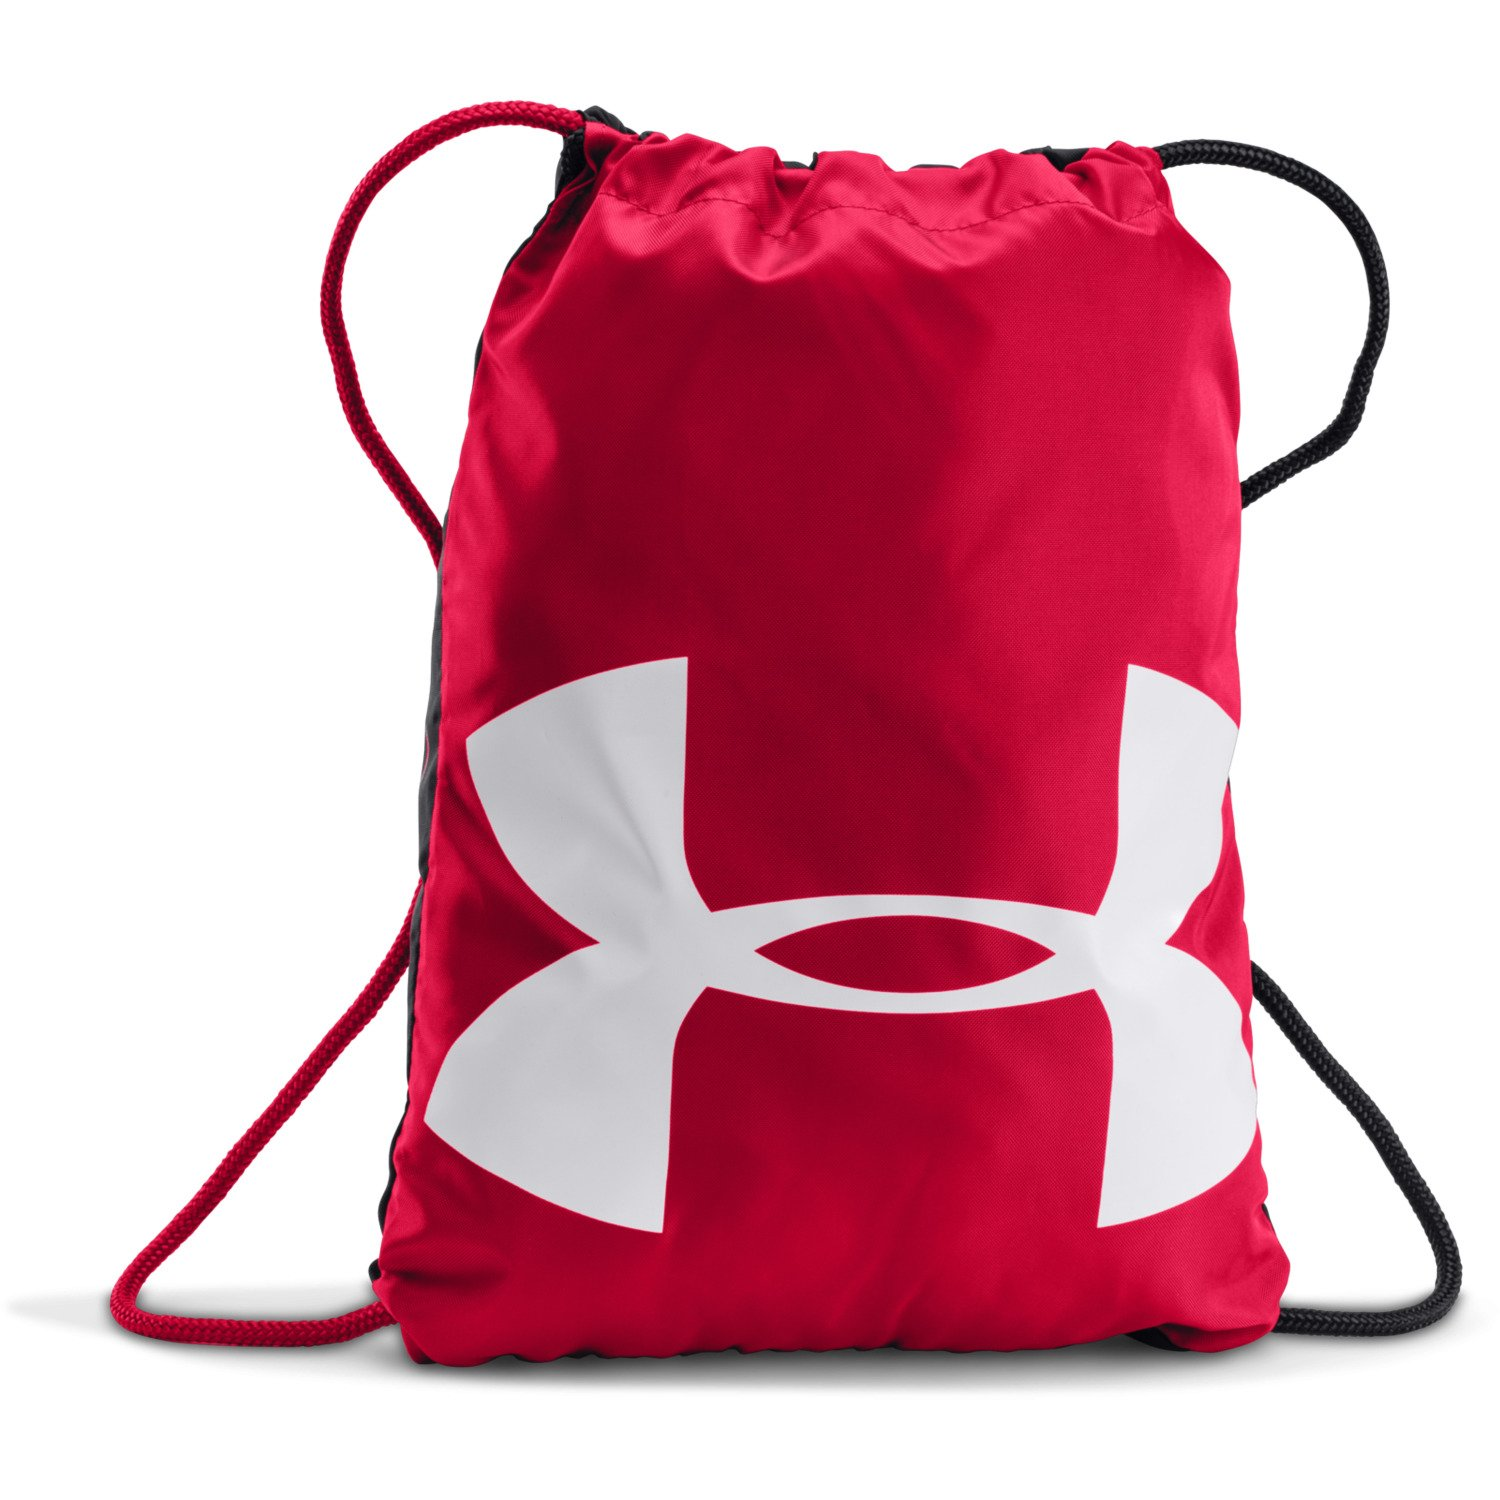 2c2d9cdc50 Under Armour Ozsee Sackpack